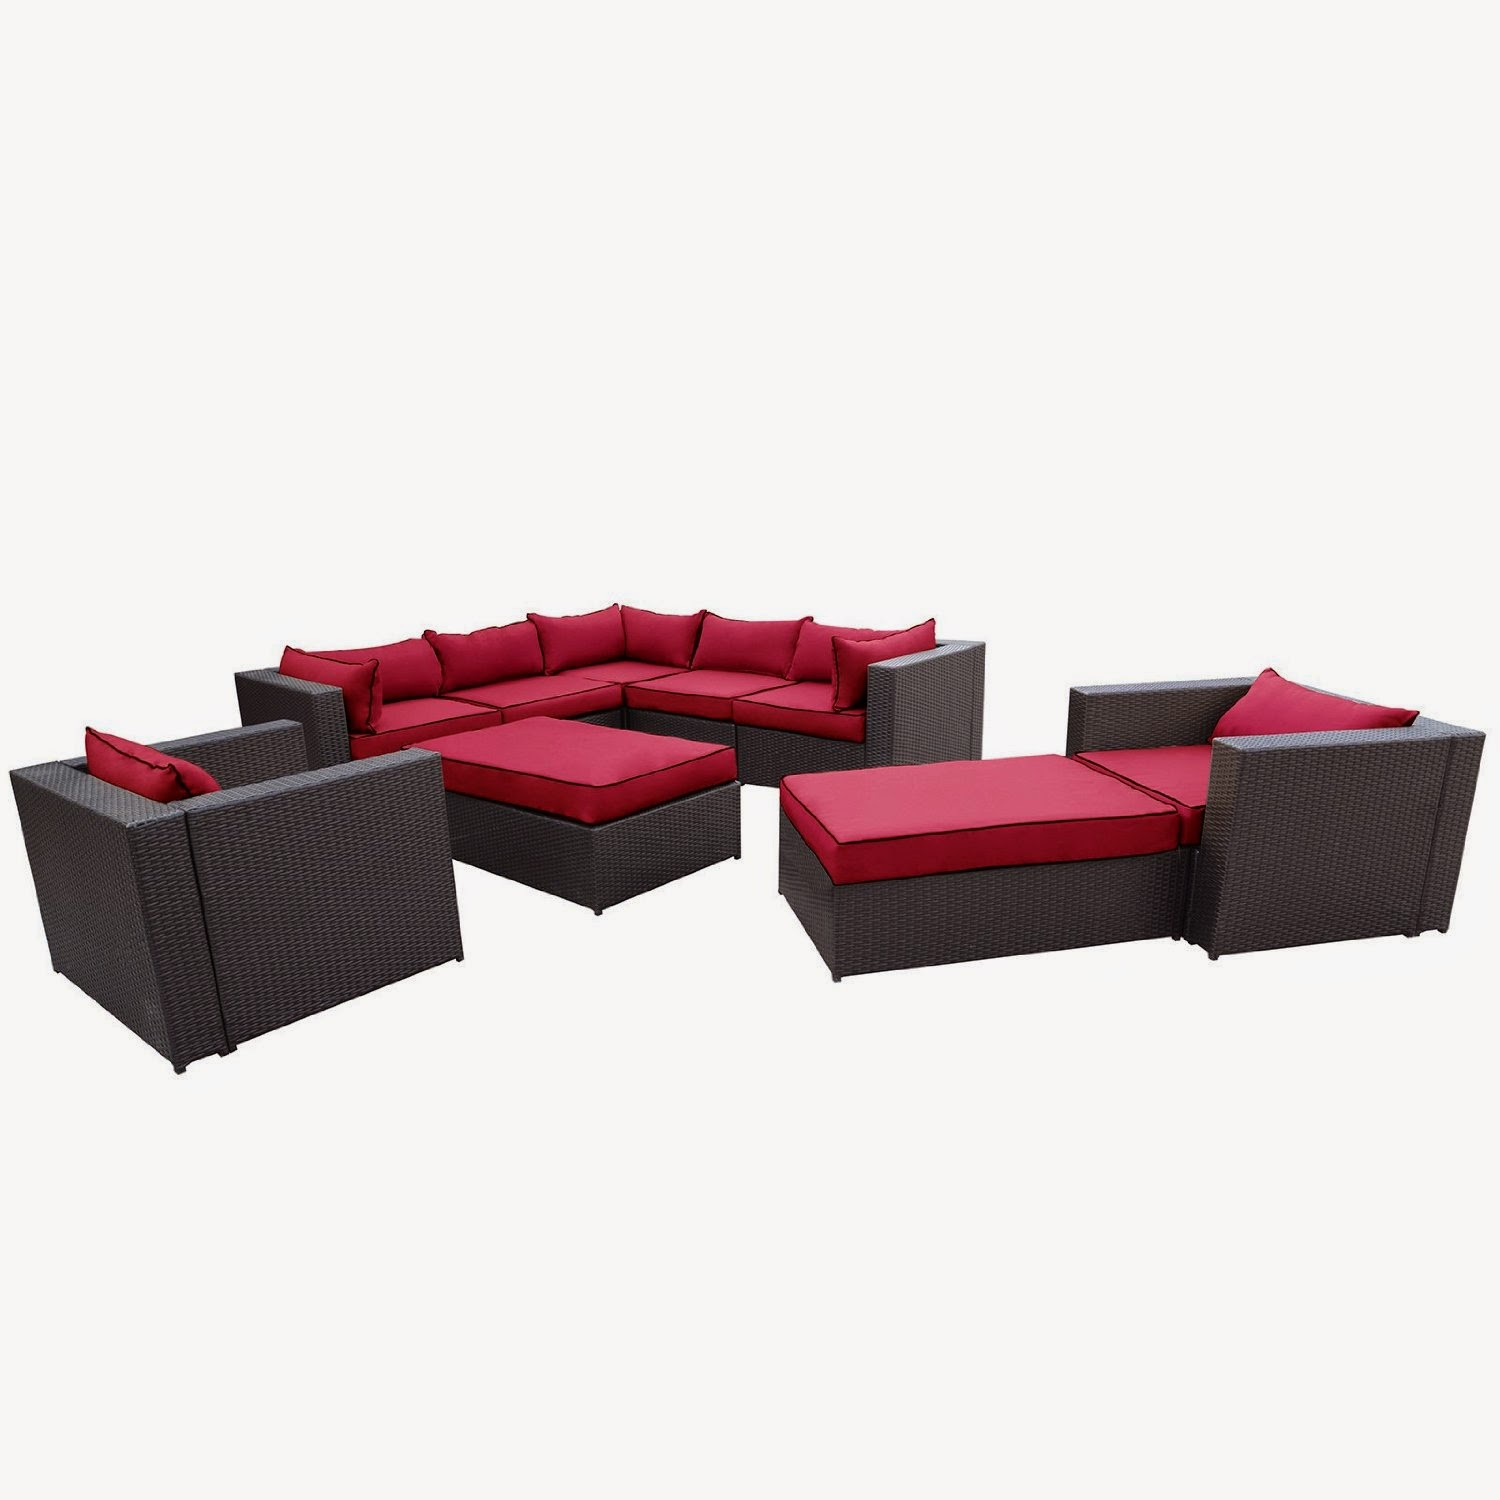 Outdoor Wicker Sleeper Sofa Sofas Under 600 Dollars Patio Rattan Furniture Sectional